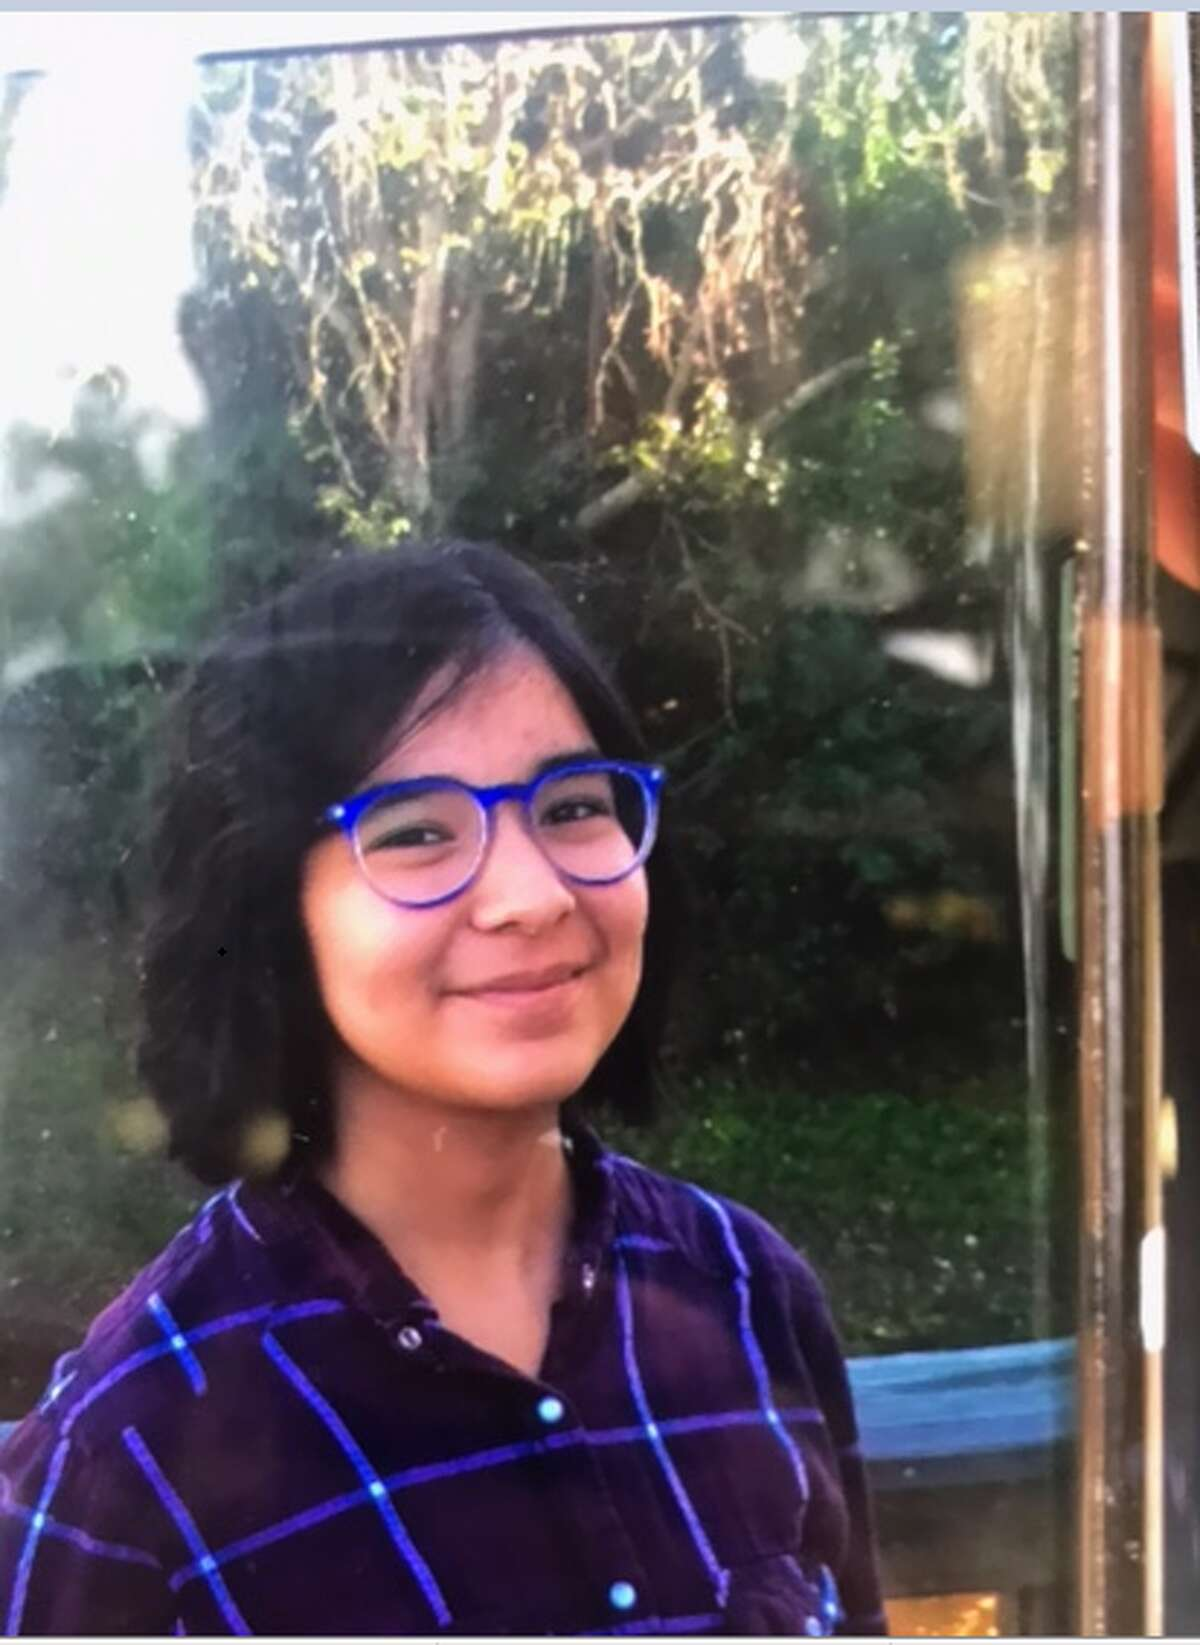 Hannah Diaz was reported missing at about 9:30 a.m. Saturday, deputies said. >> Keep clicking through this gallery to see crimes that shocked Houston's suburbs in 2018.